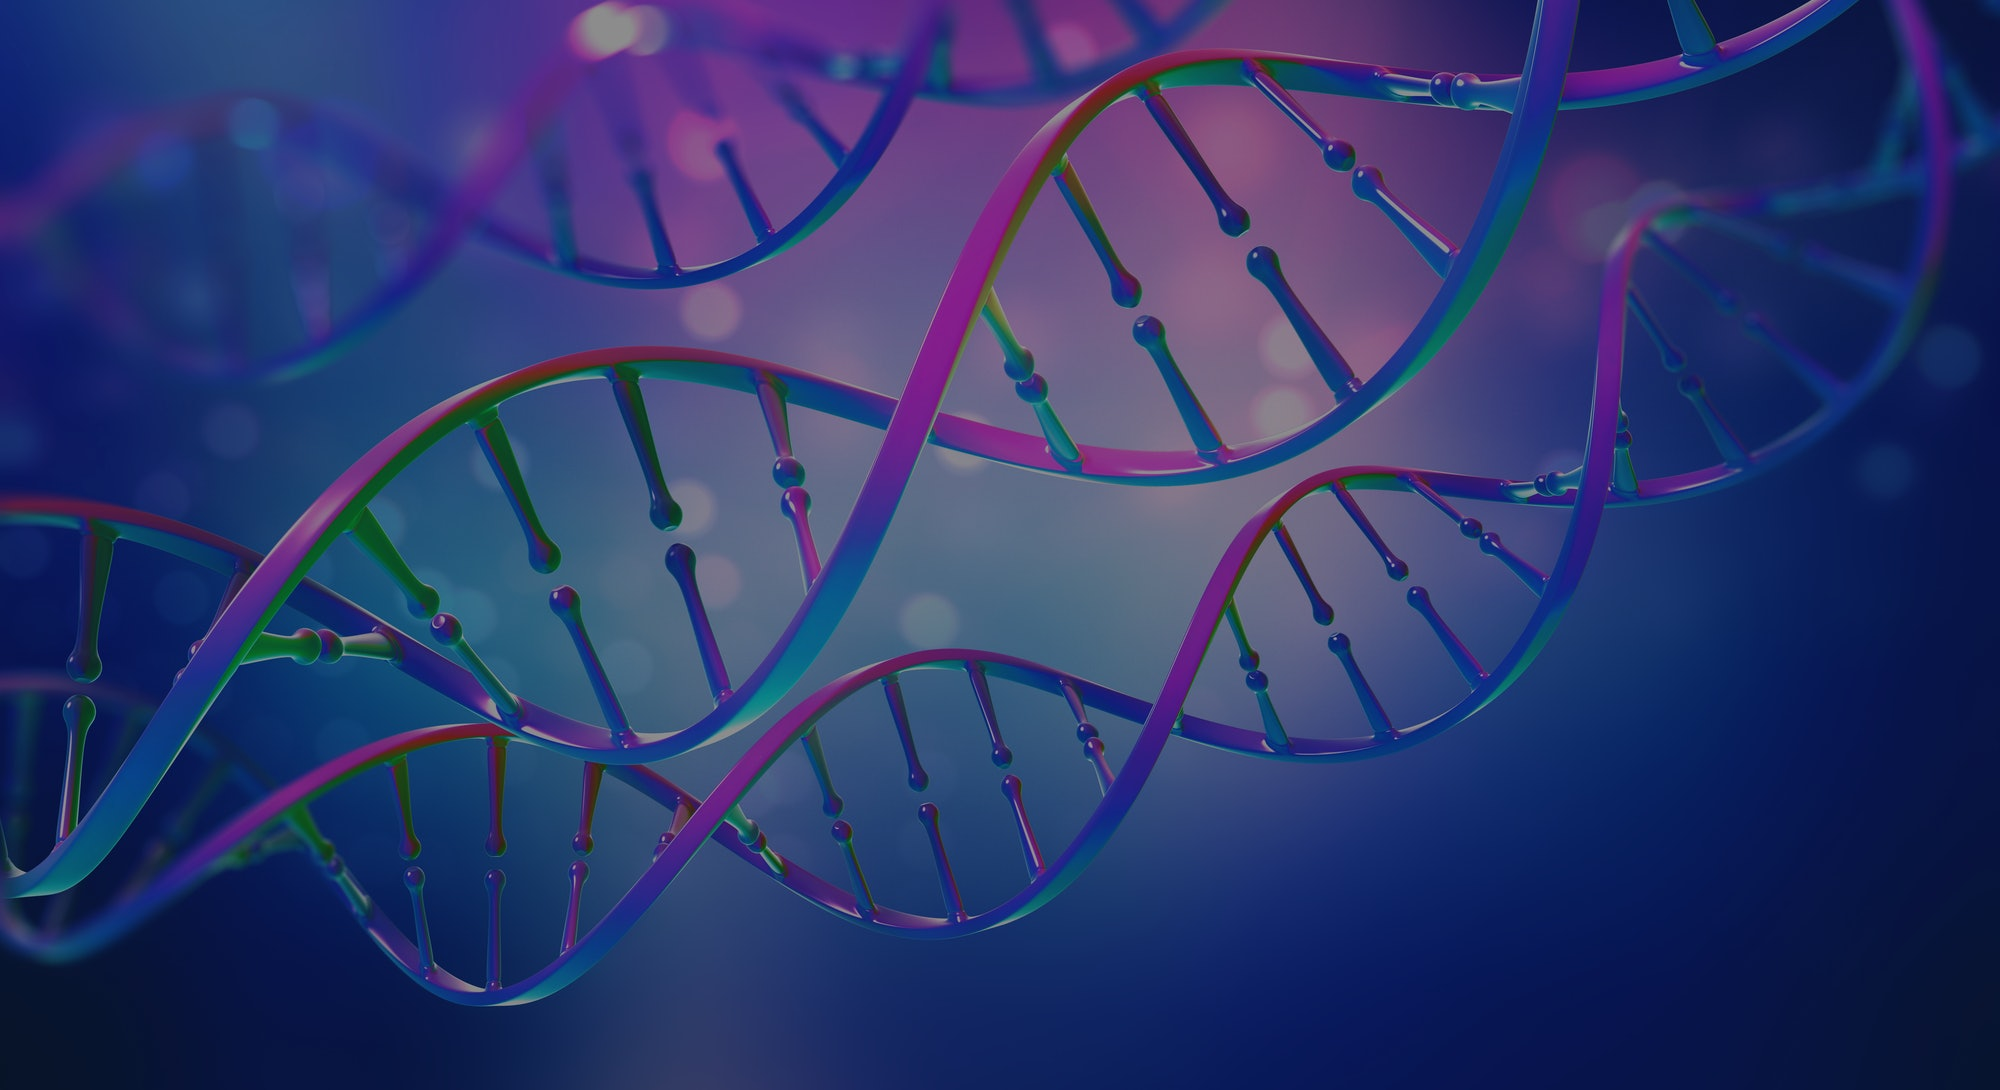 DNA. Study of gene structure of cell. Bright neon light. DNA molecule structure. 3D double helix illustration. Genetic engineering of the future